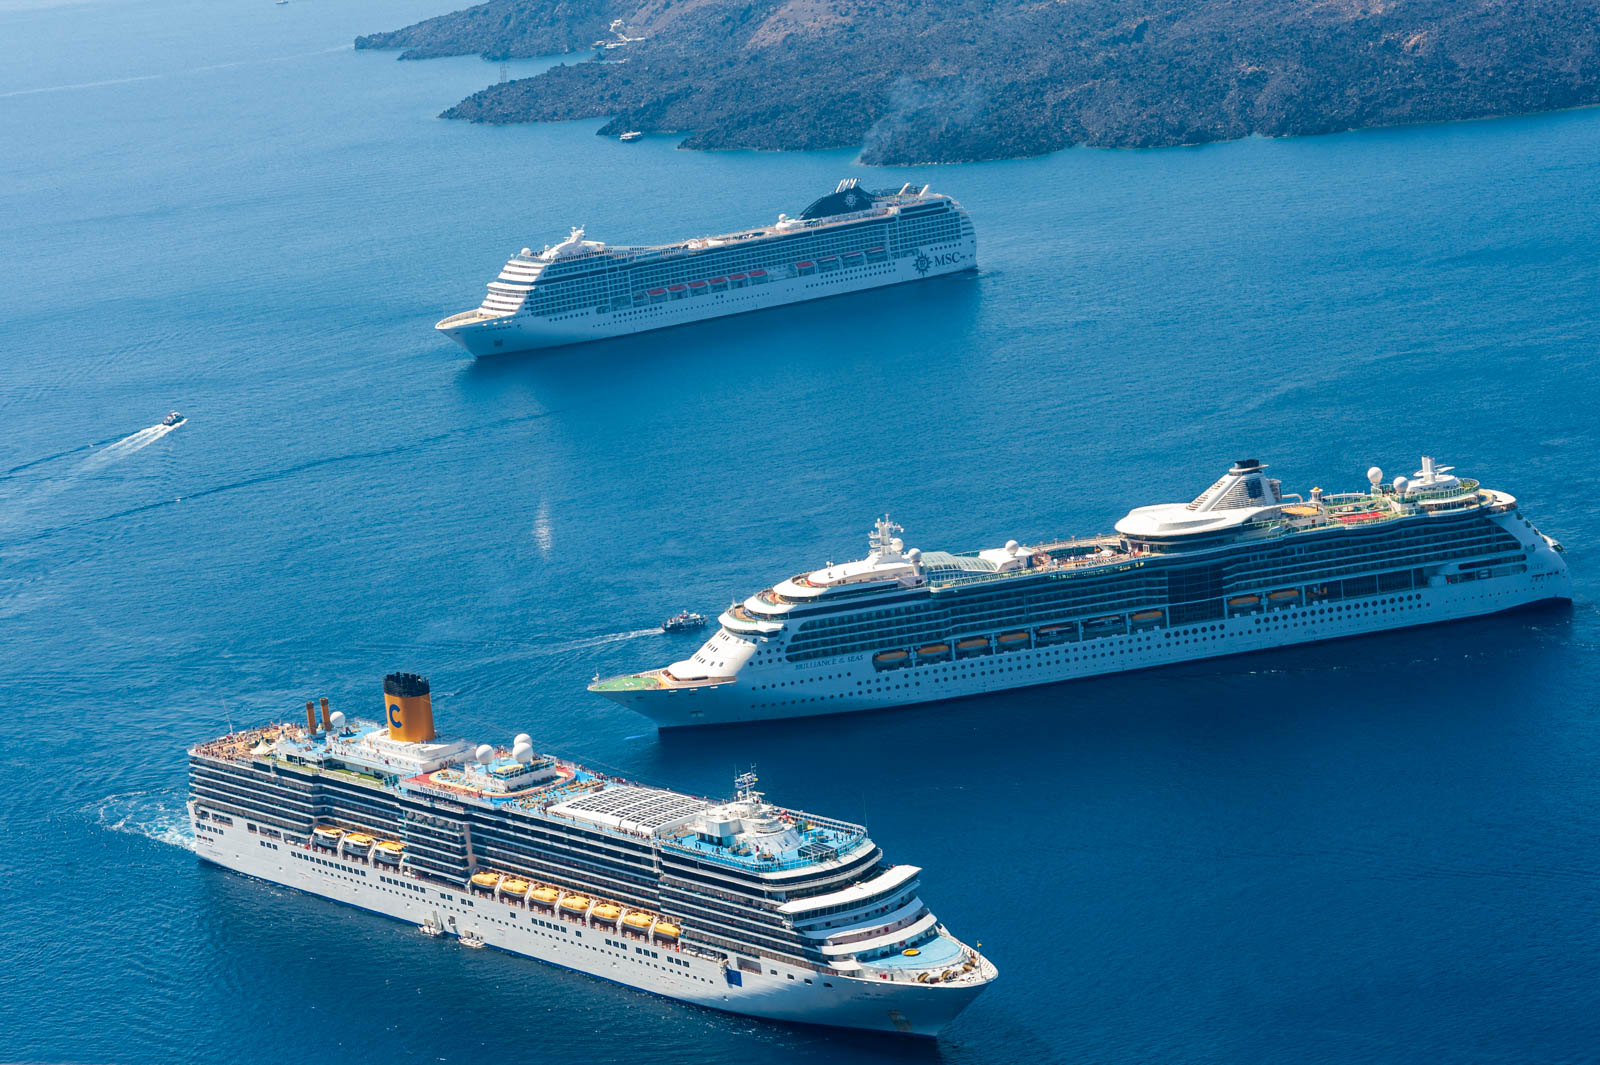 Cruise ships below the Caldera